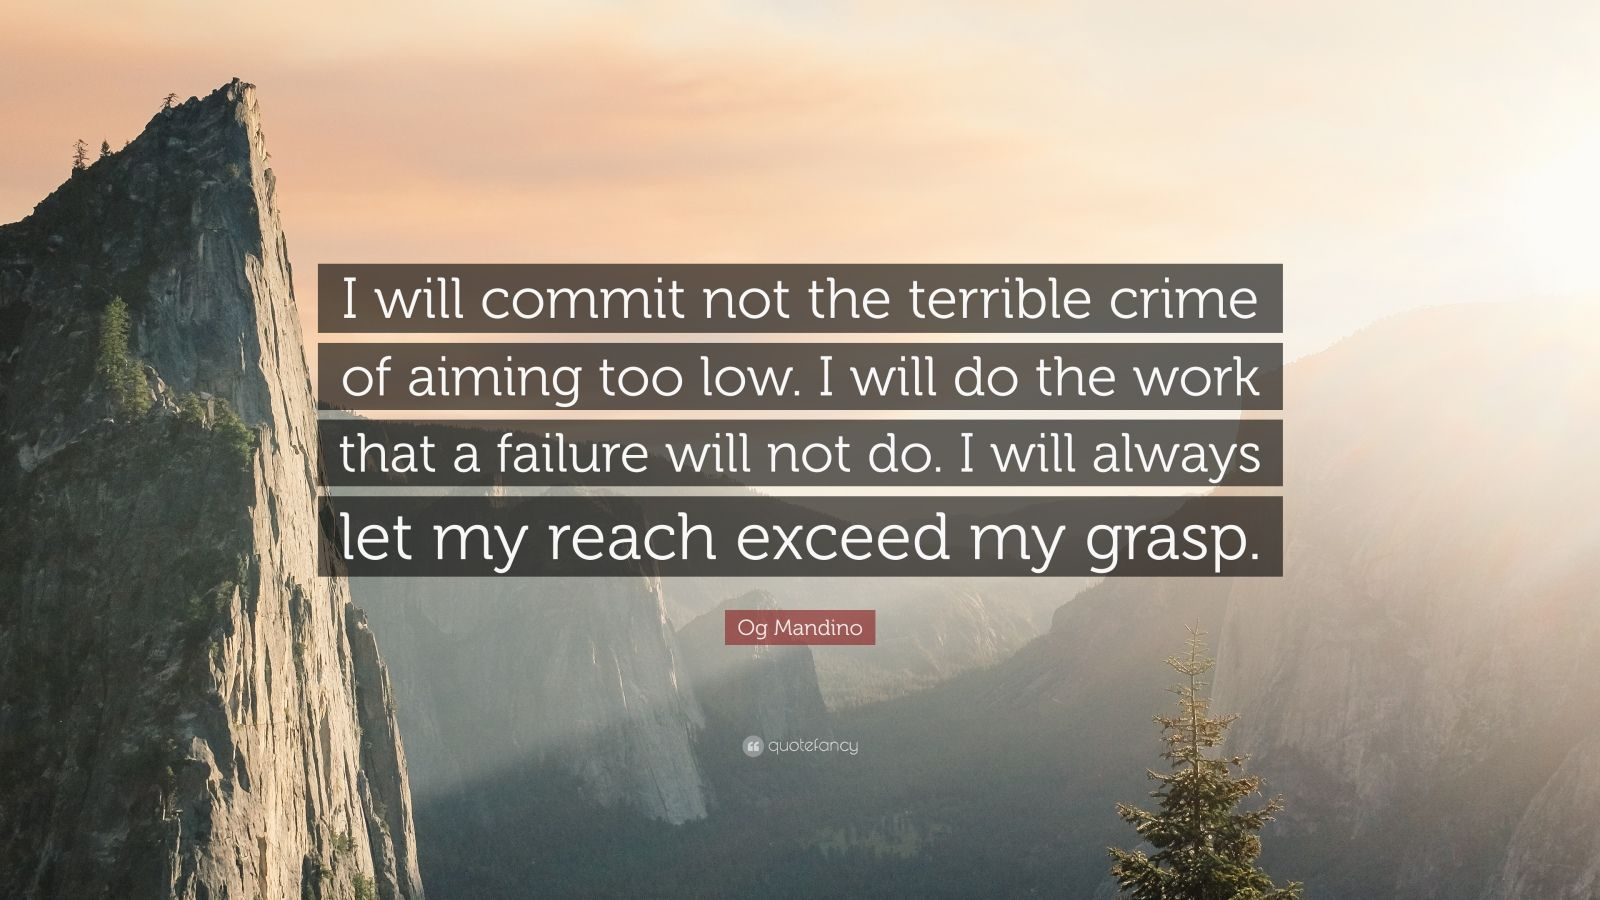 """Og Mandino Quote: """"I will commit not the terrible crime of aiming too low. I will do the work that a failure will not do. I will always let my reach exceed my grasp."""""""